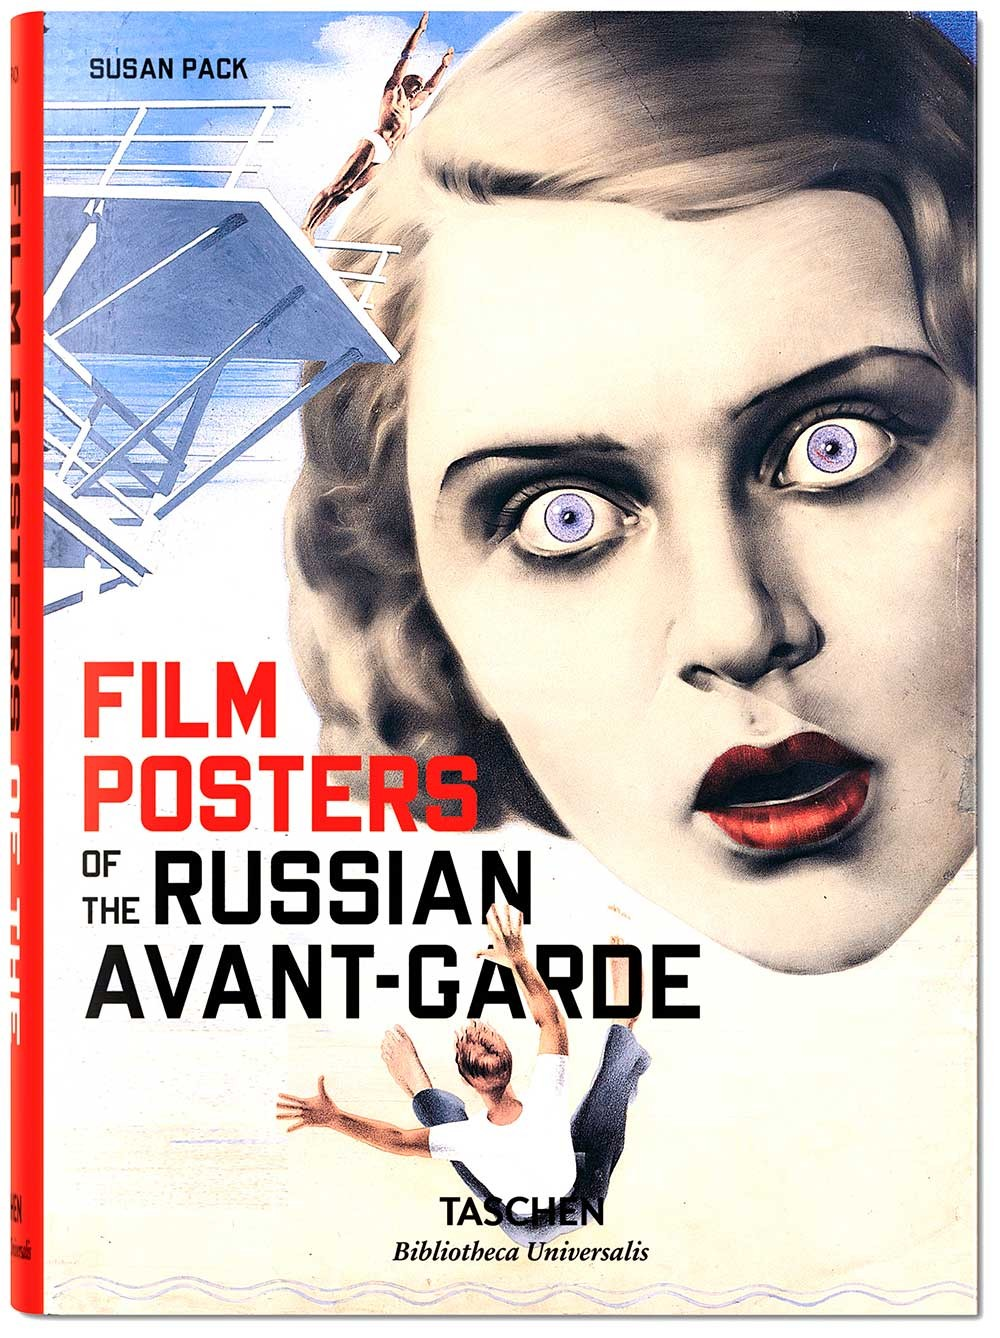 Book cover - Filmposters of the Russian Avant-Garde